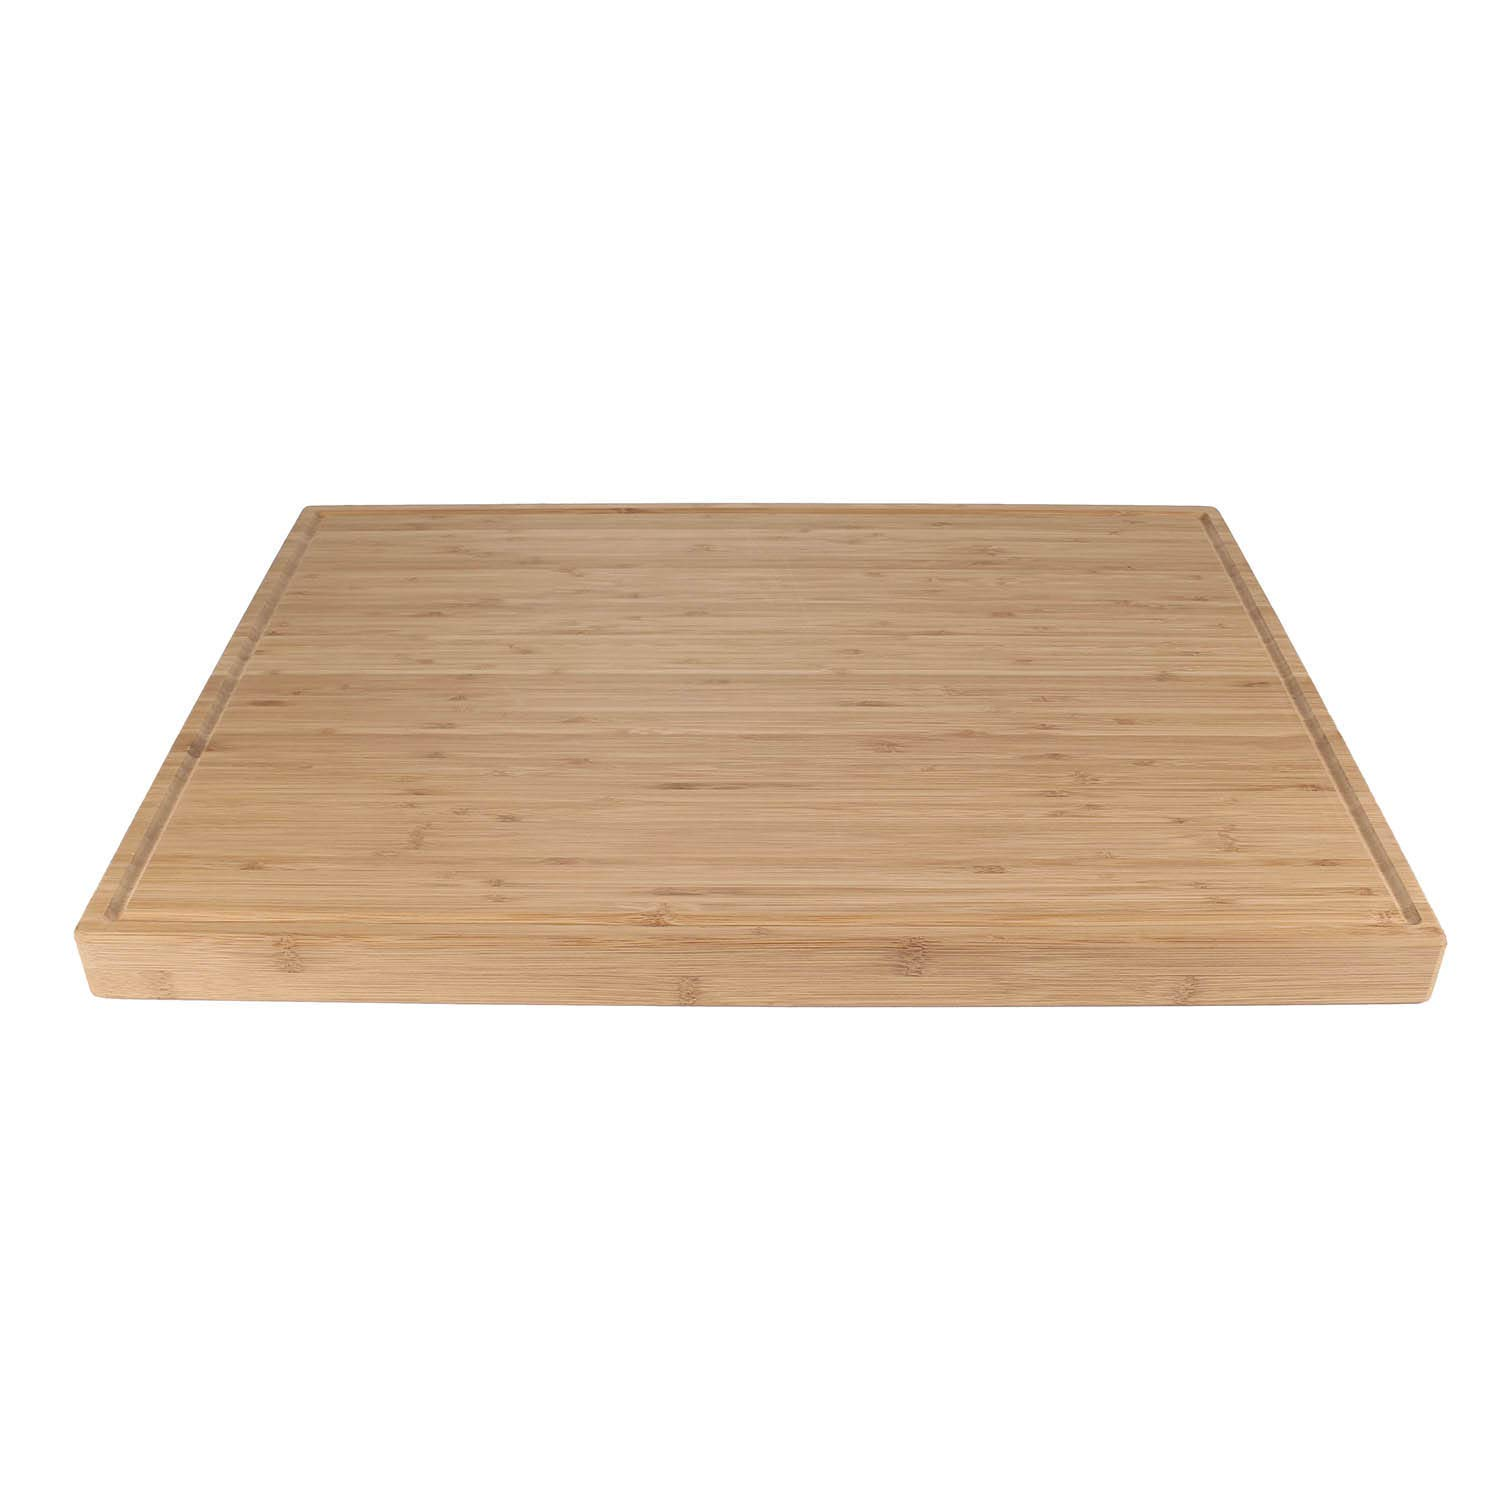 "BambooMN Brand - Heavy Duty Premium Bamboo Cutting Board - 24"" x 18"" x 1.5"" (Grooved)"